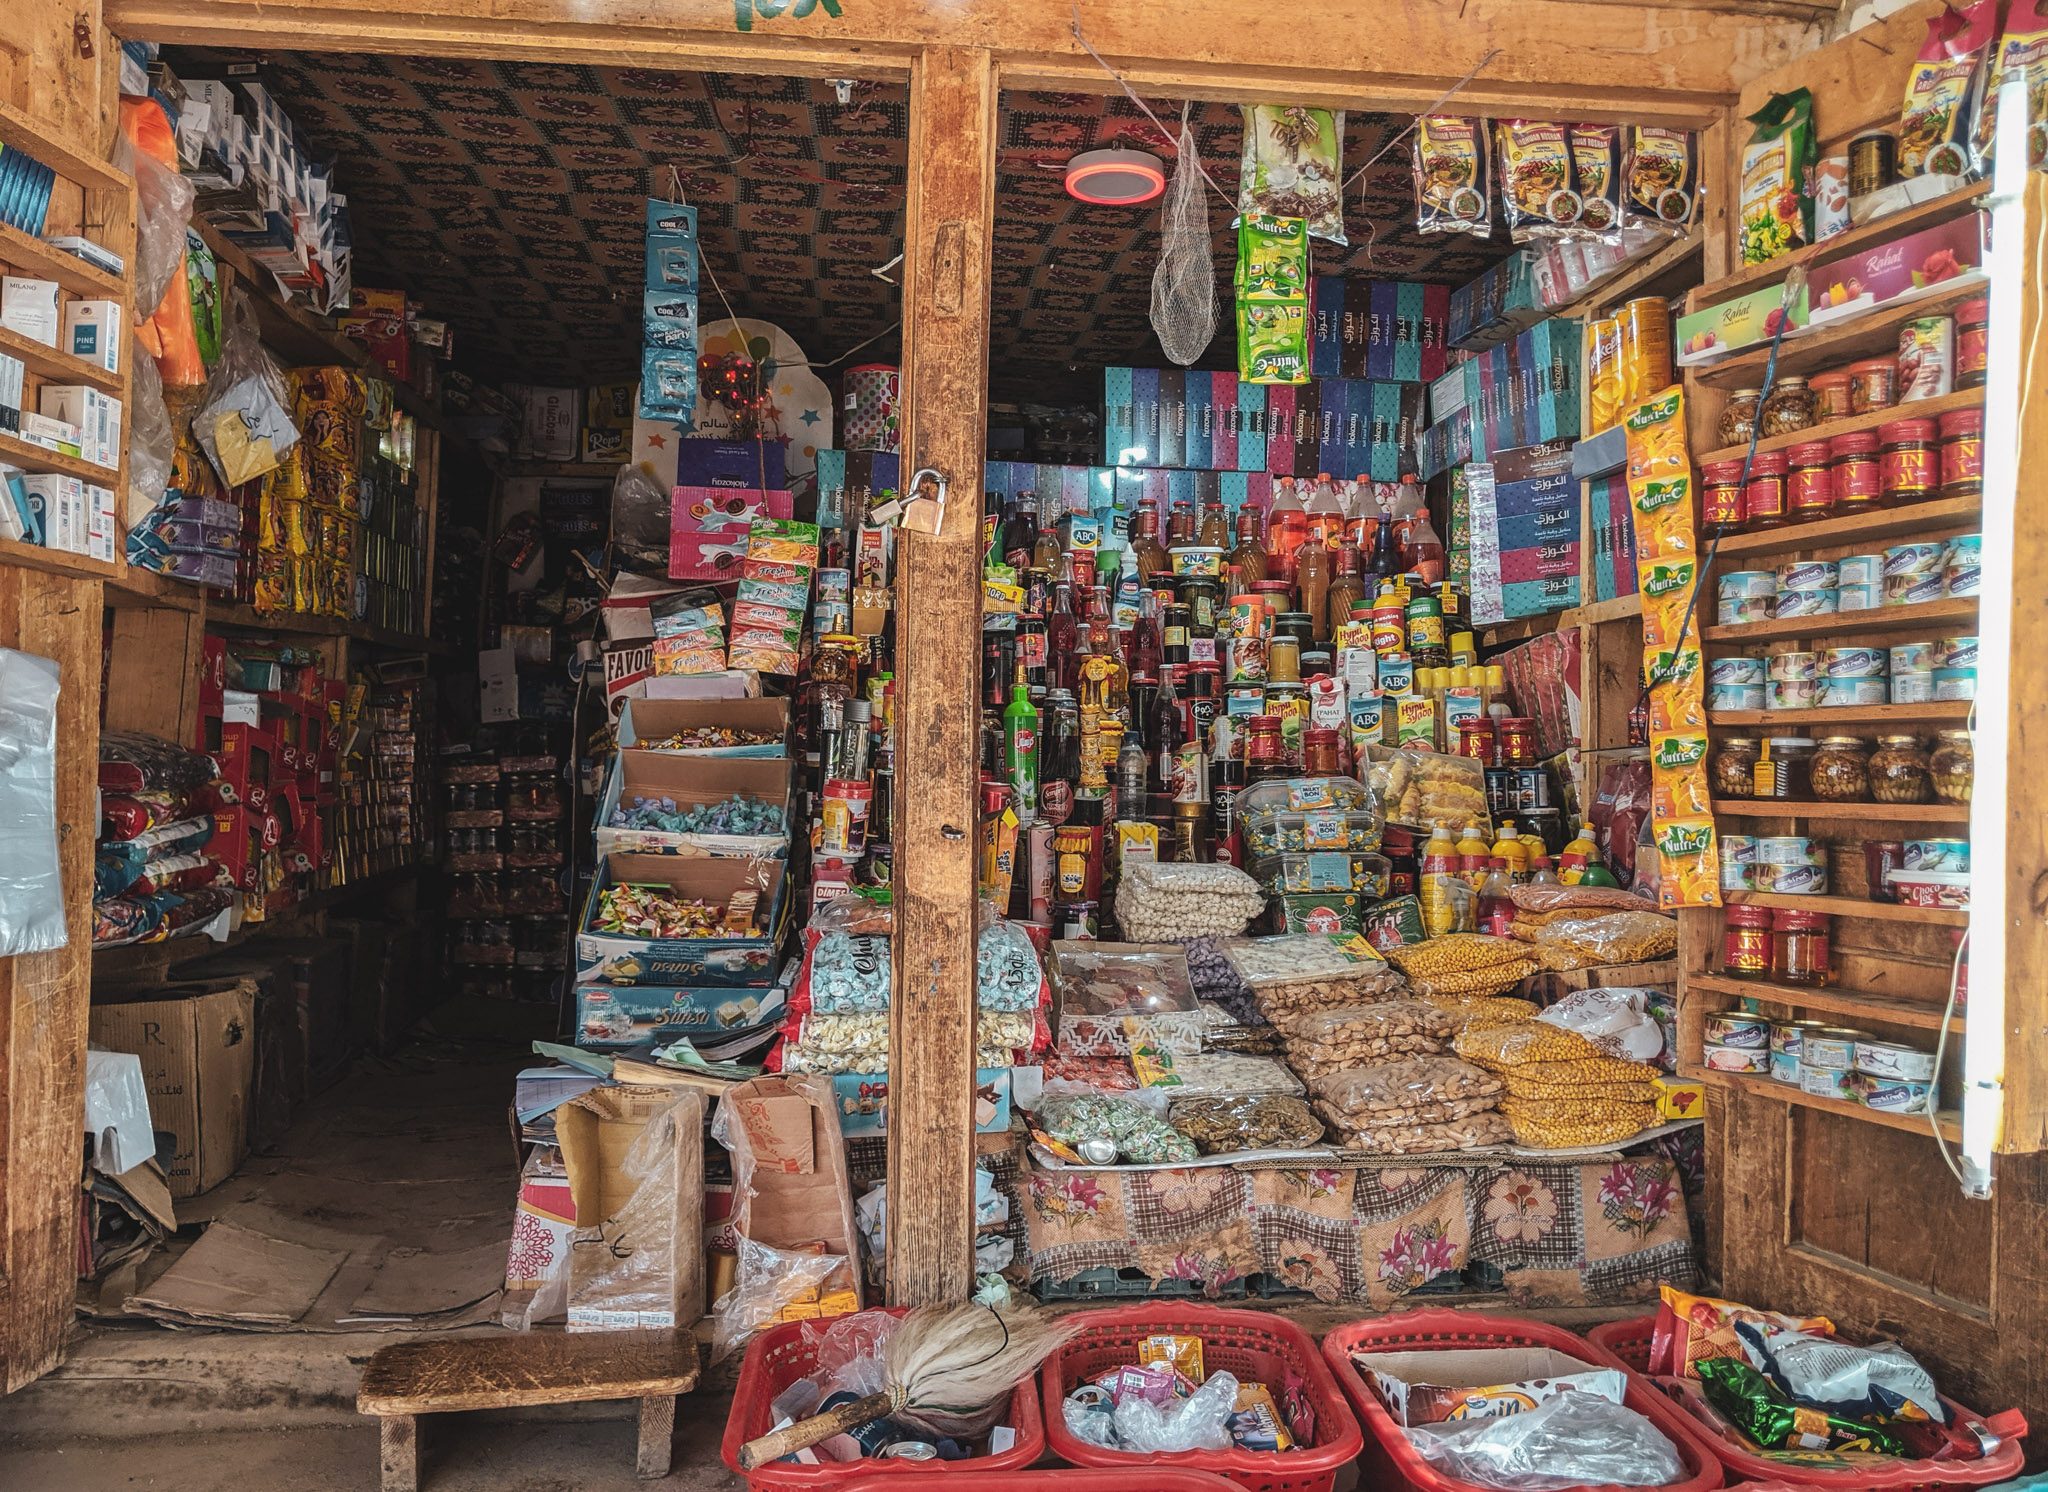 Typical food shop in the Ishkashim bazaar